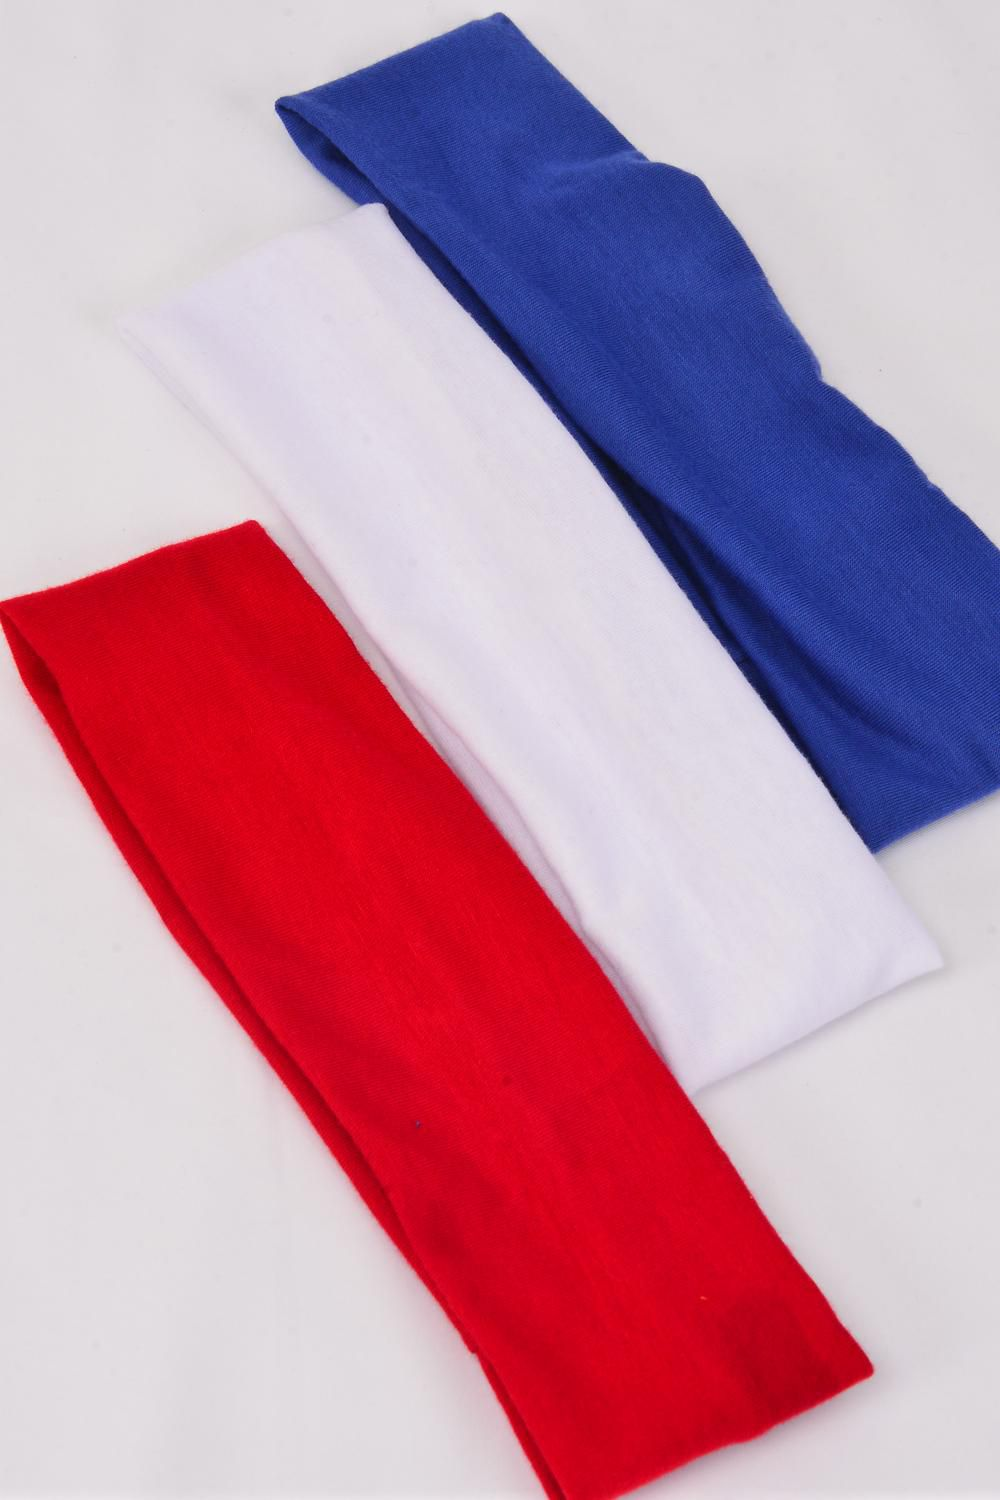 "Headband Cotton Stretchy Red White Blue Mix/DZ **Stretch** Weith-2.5"" Wide,4 of each Color Asst,Hang Tag & OPP Bag & UPC Code"